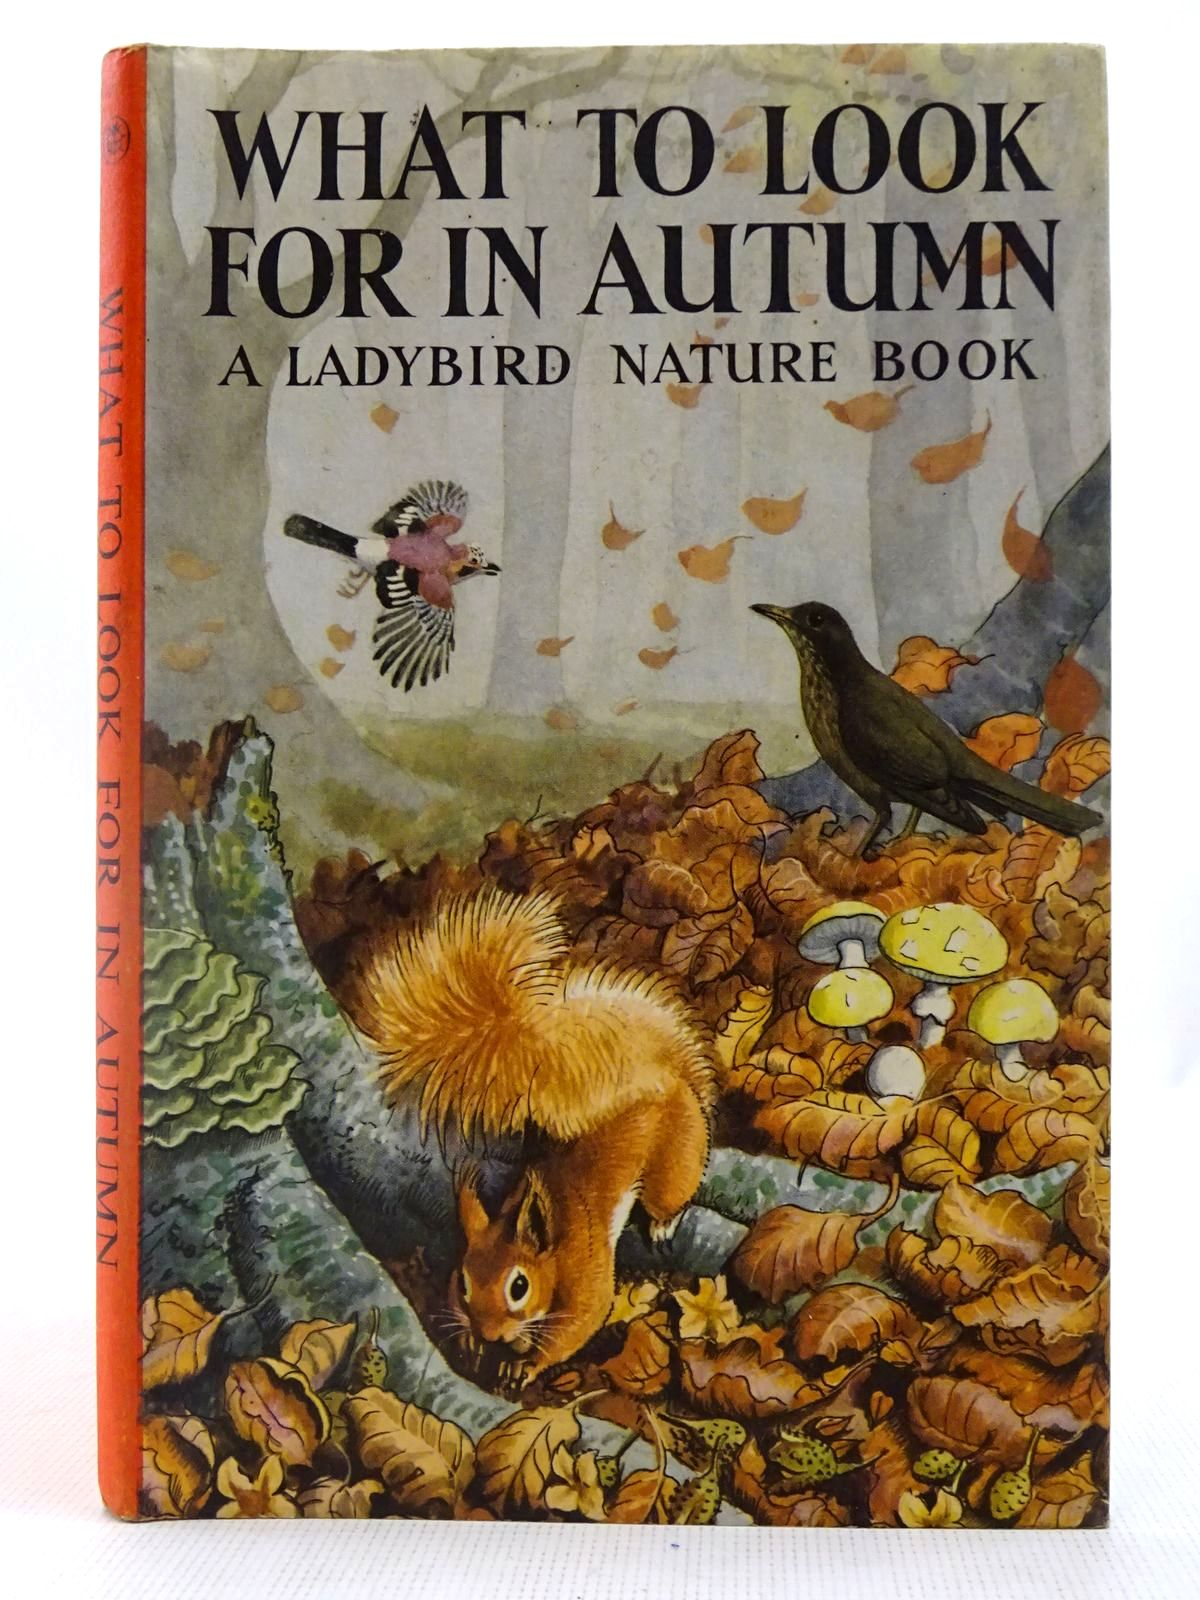 Photo of WHAT TO LOOK FOR IN AUTUMN written by Watson, E.L. Grant illustrated by Tunnicliffe, C.F. published by Wills & Hepworth Ltd. (STOCK CODE: 2127481)  for sale by Stella & Rose's Books